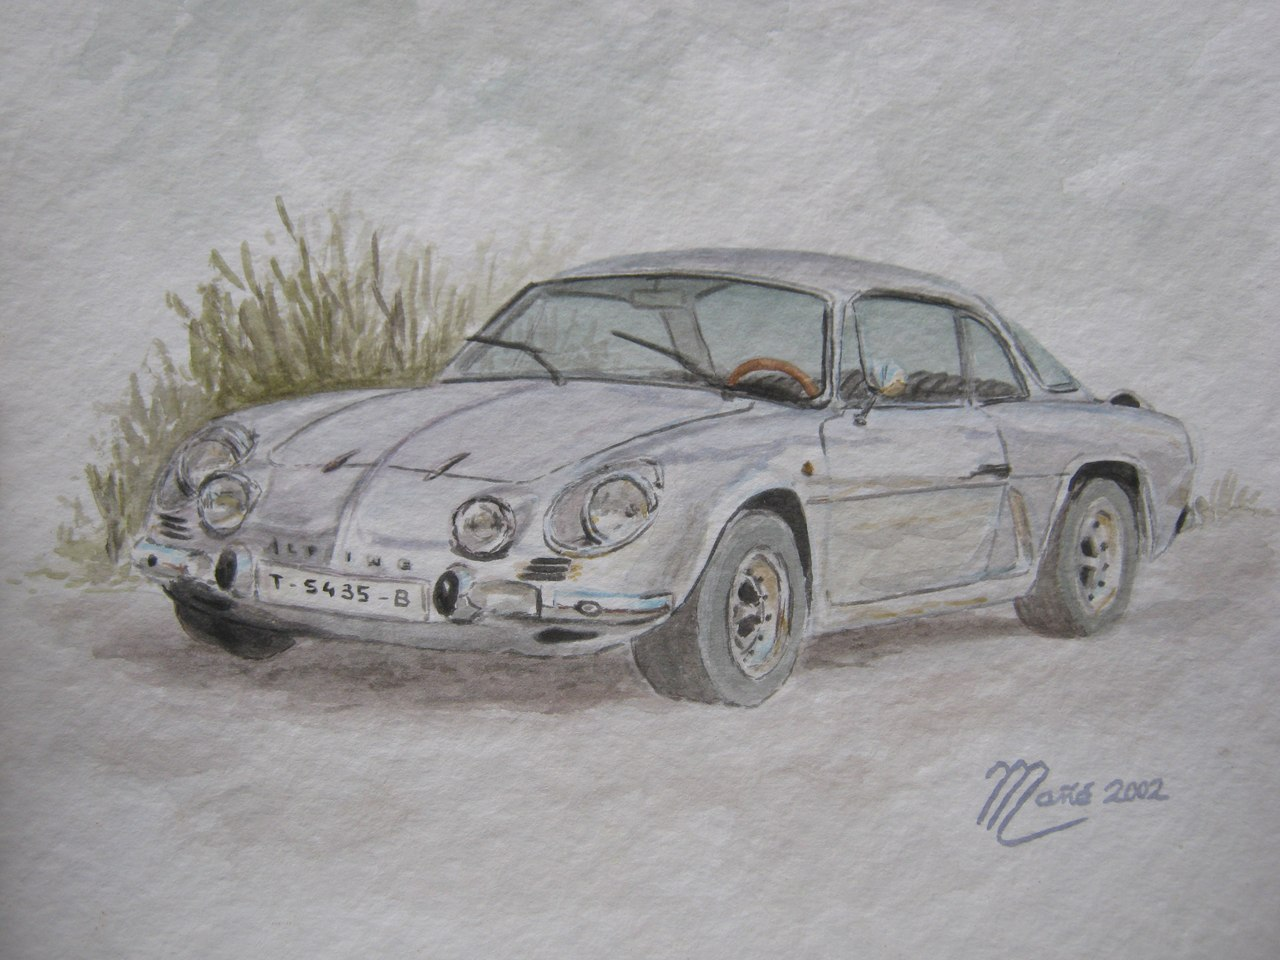 Renault Alpine A110: watercolor painting by Joan Mañé